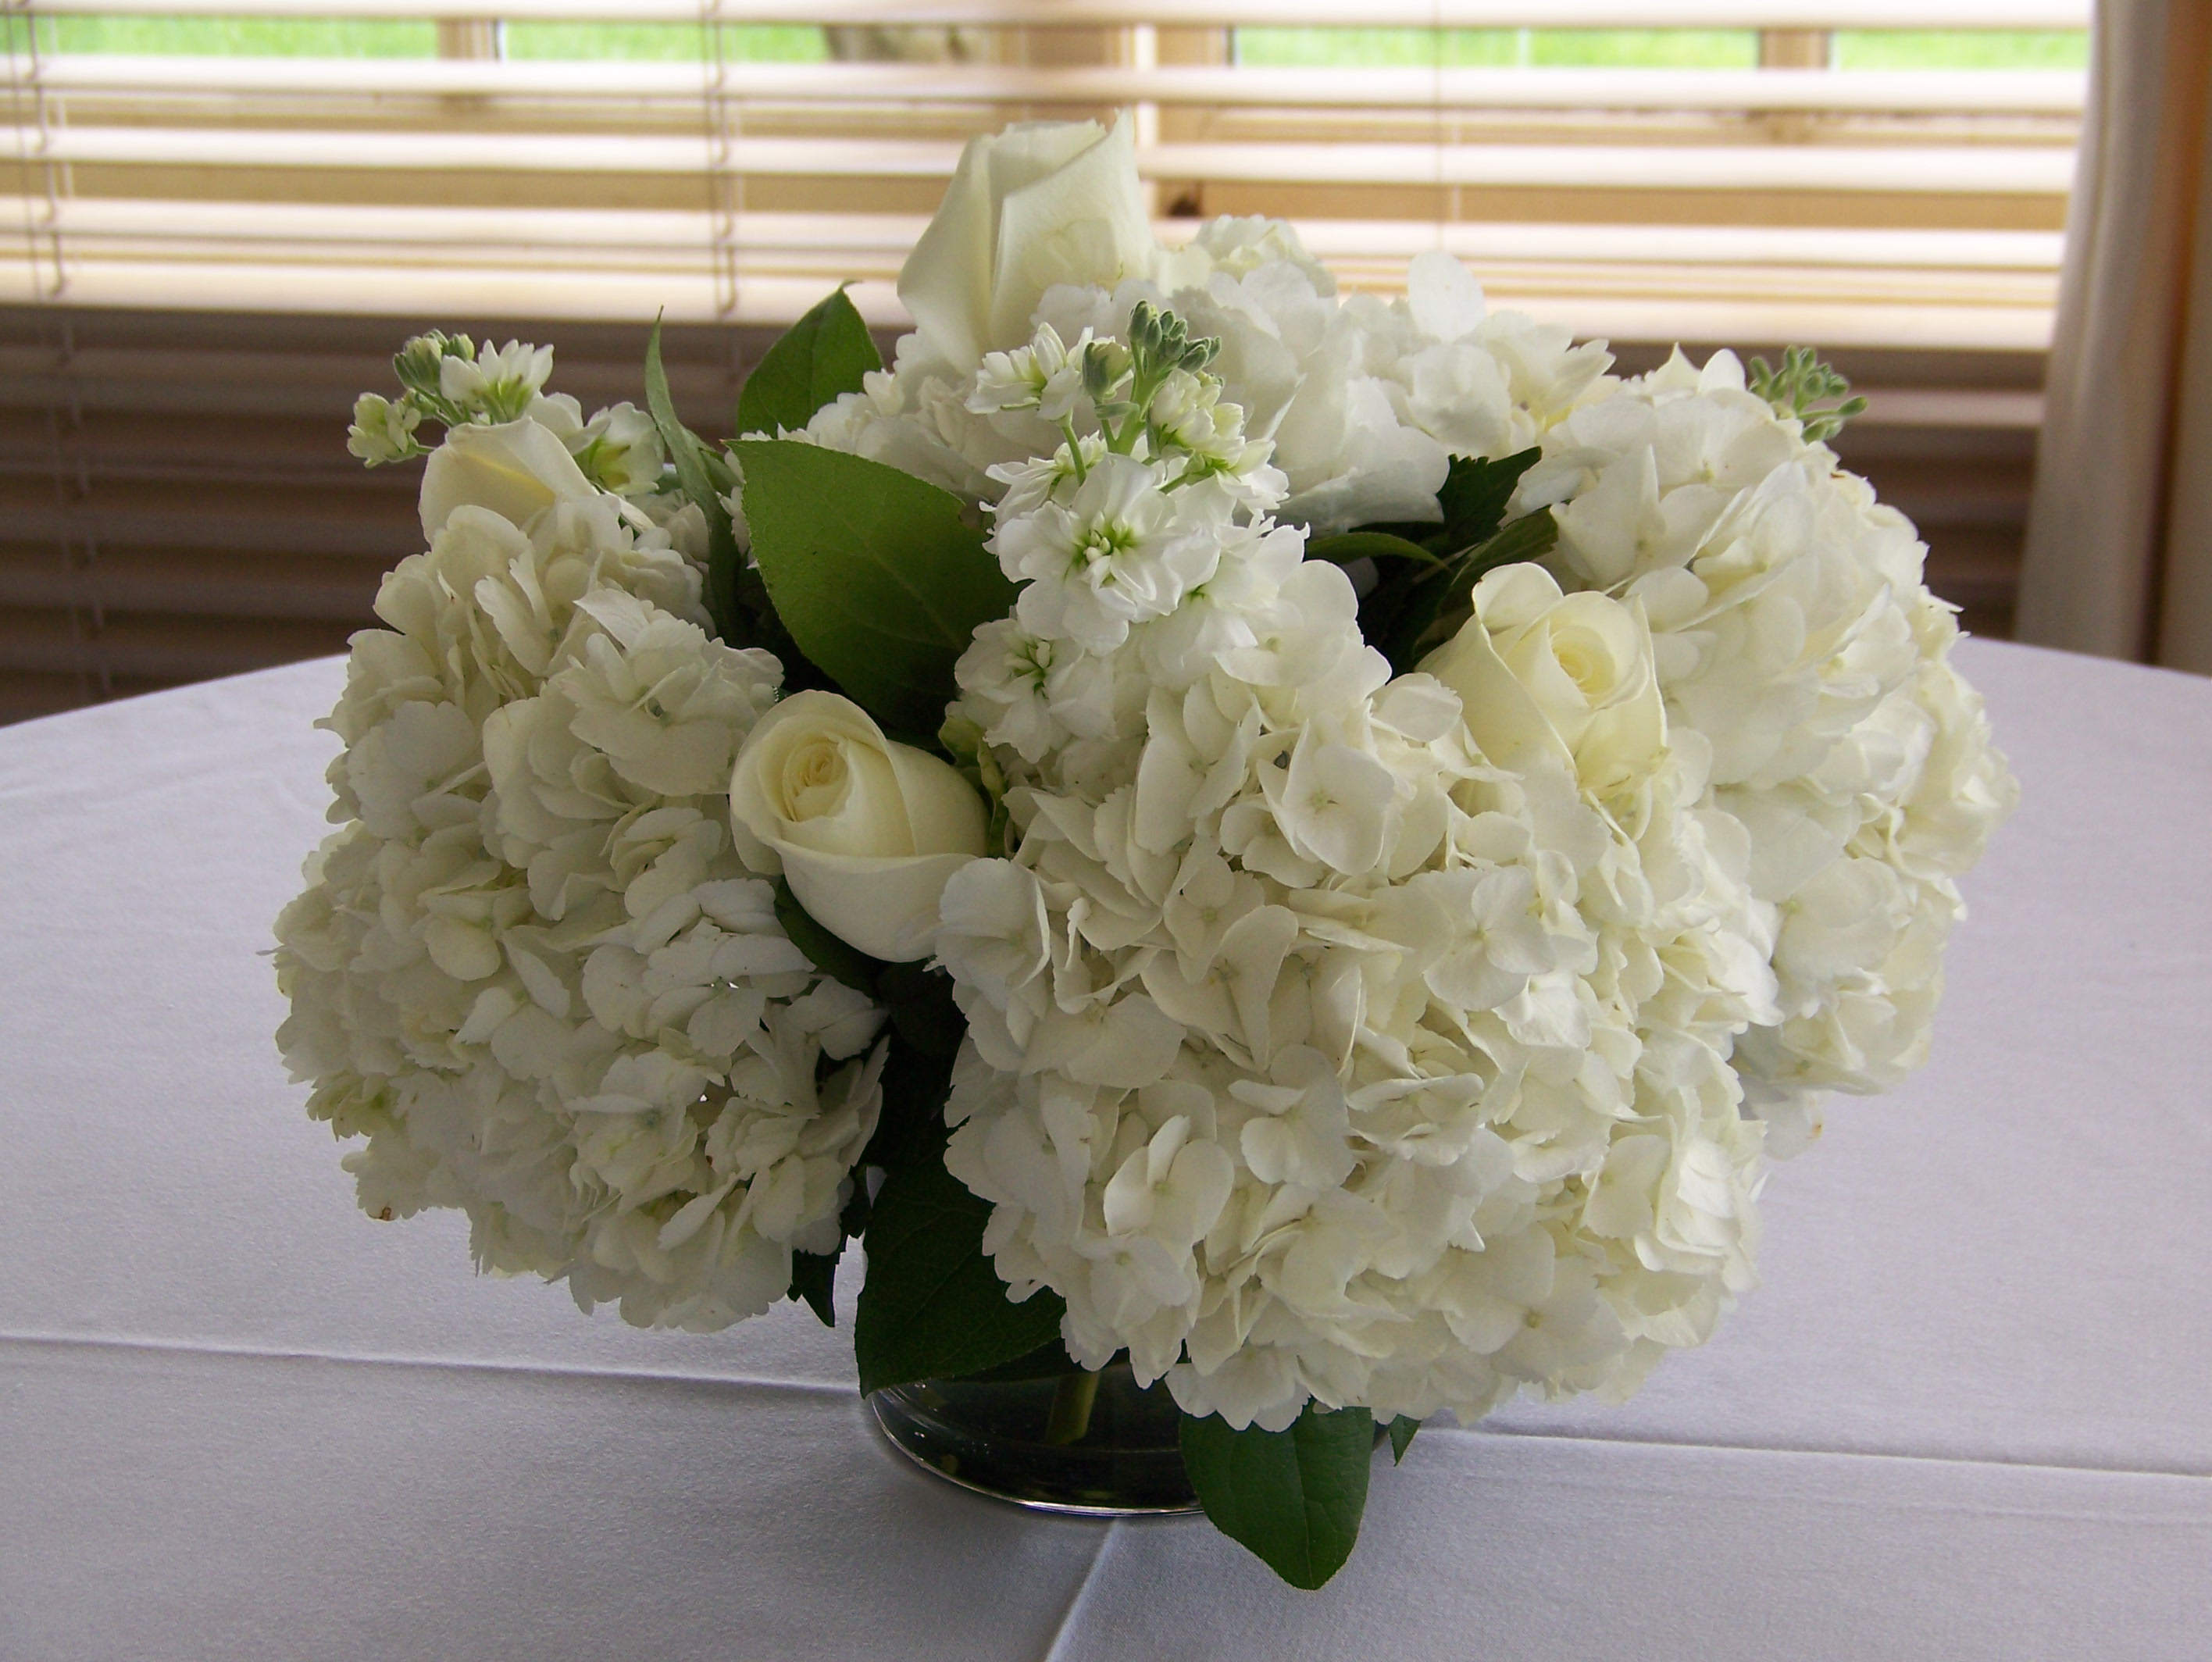 Send Flowers Anywhere in the United States or Europe